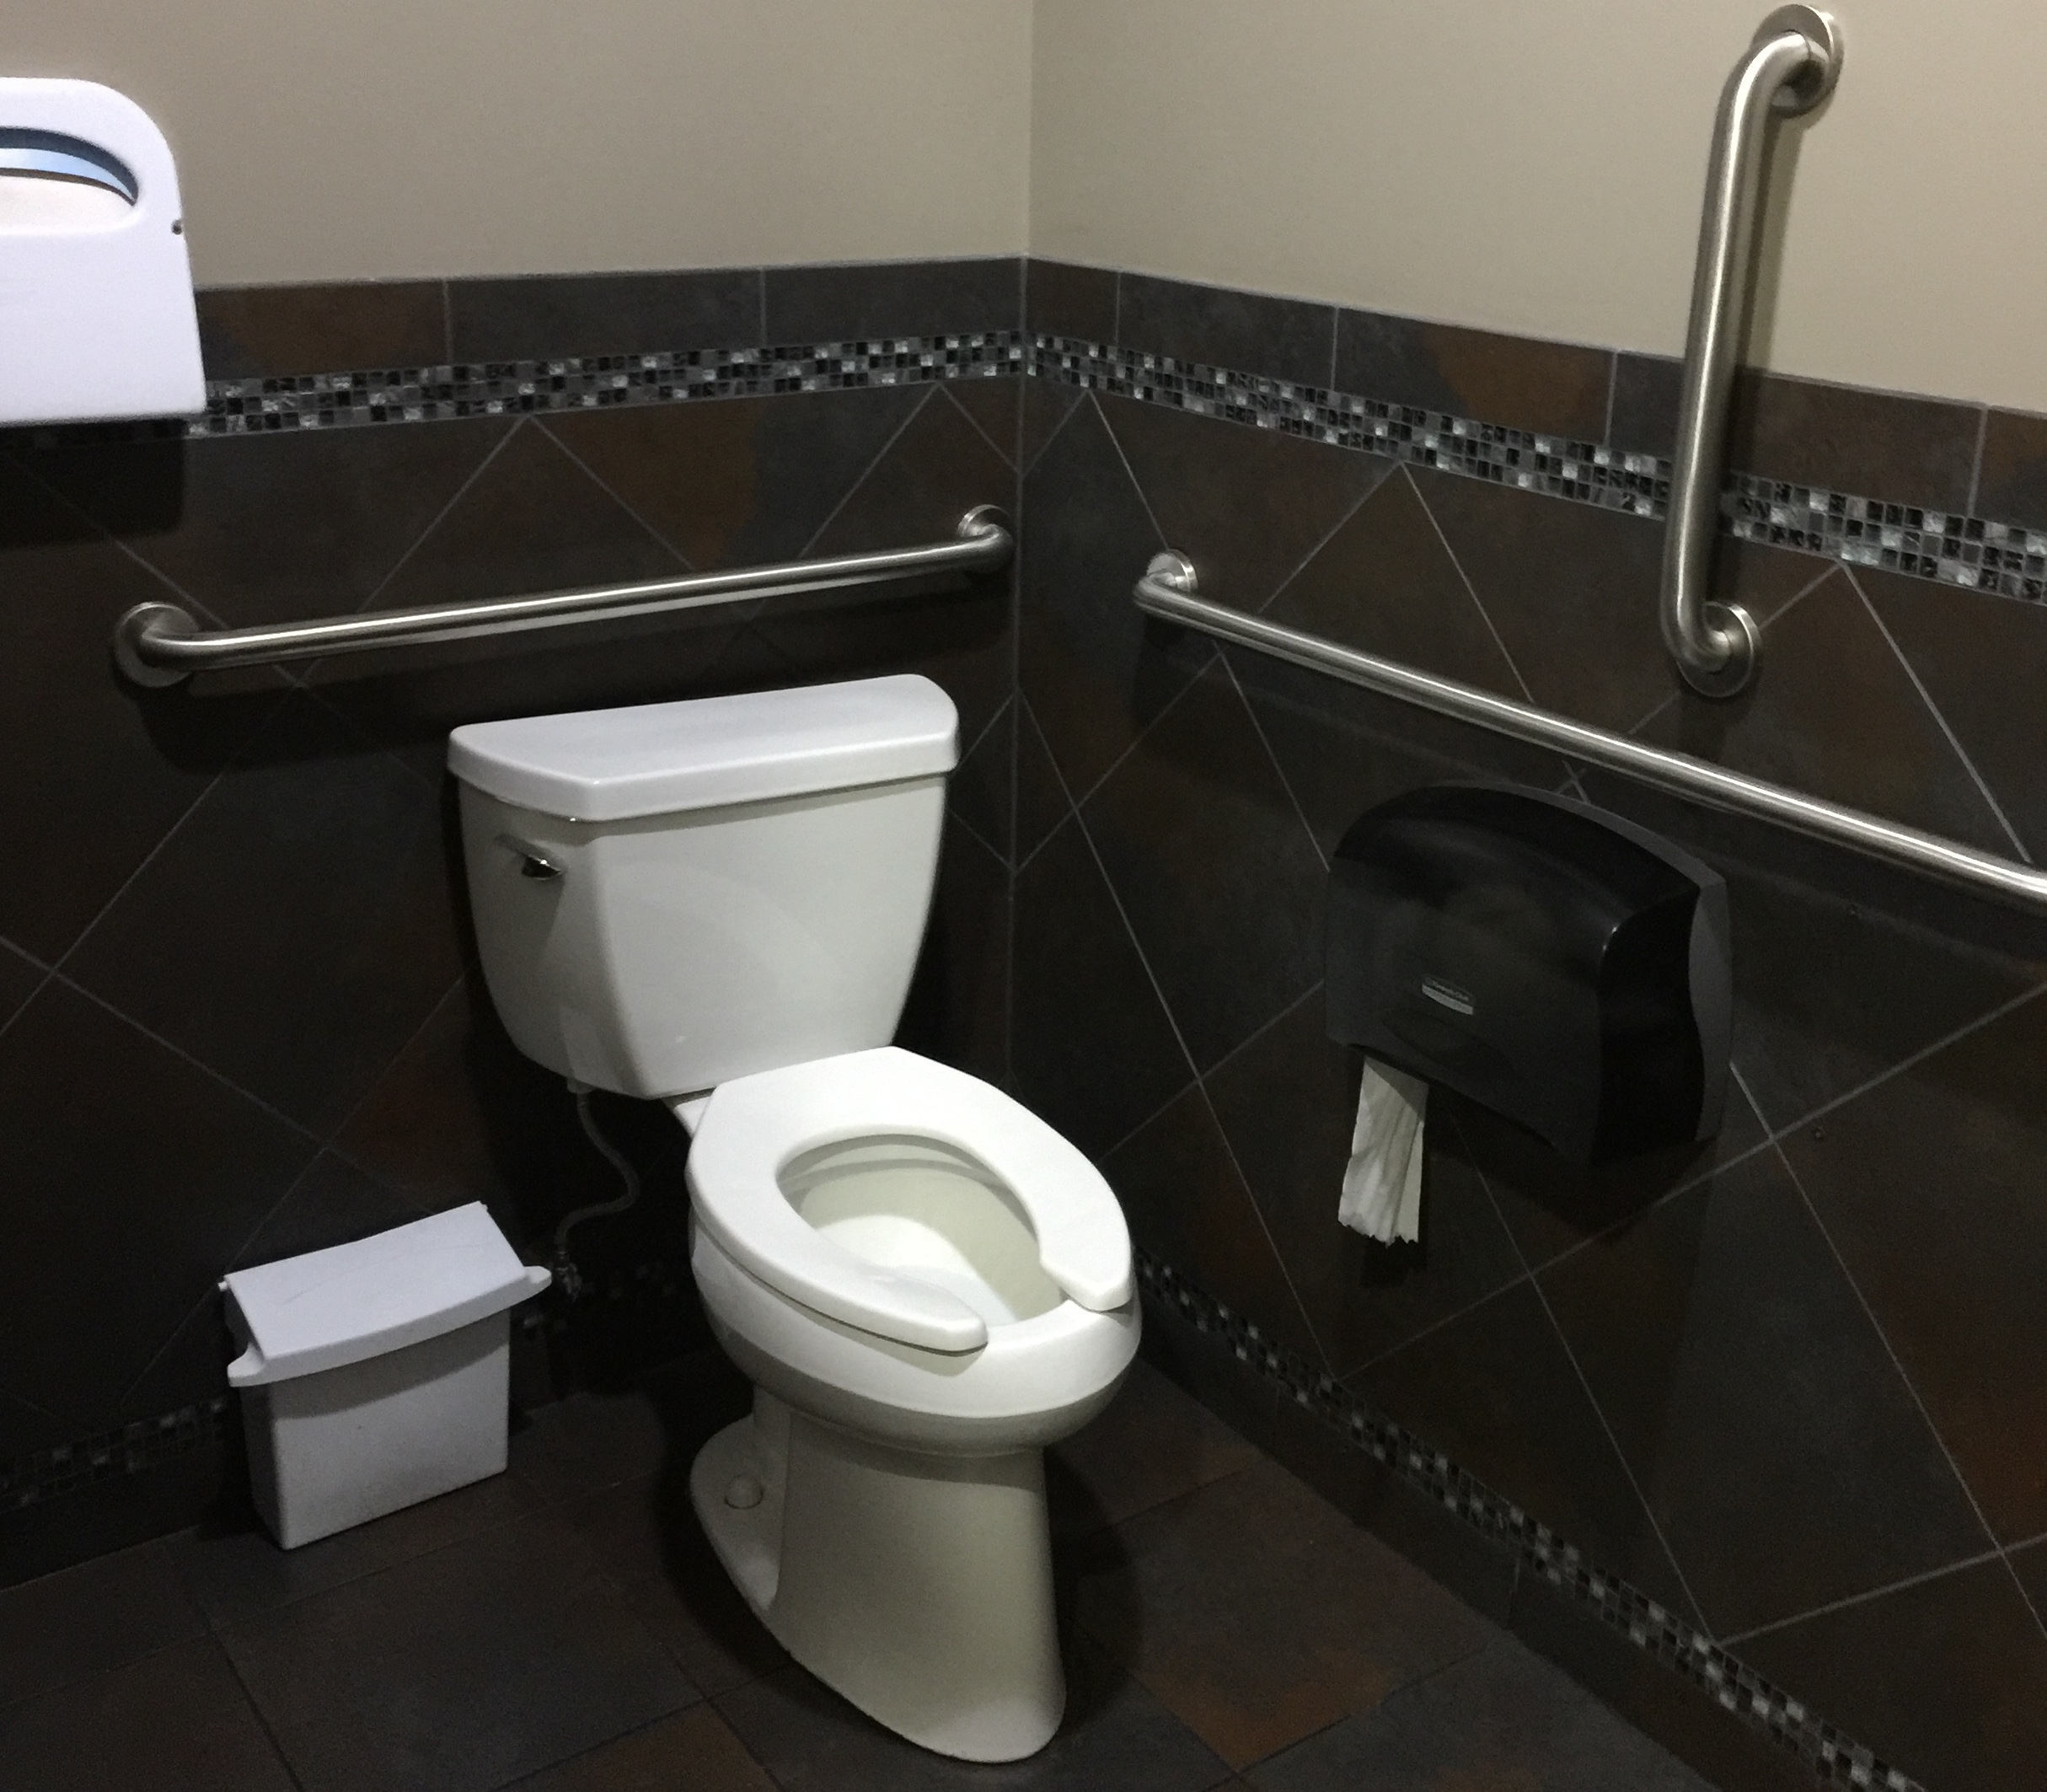 Photo showing grab bars on the right of toilet